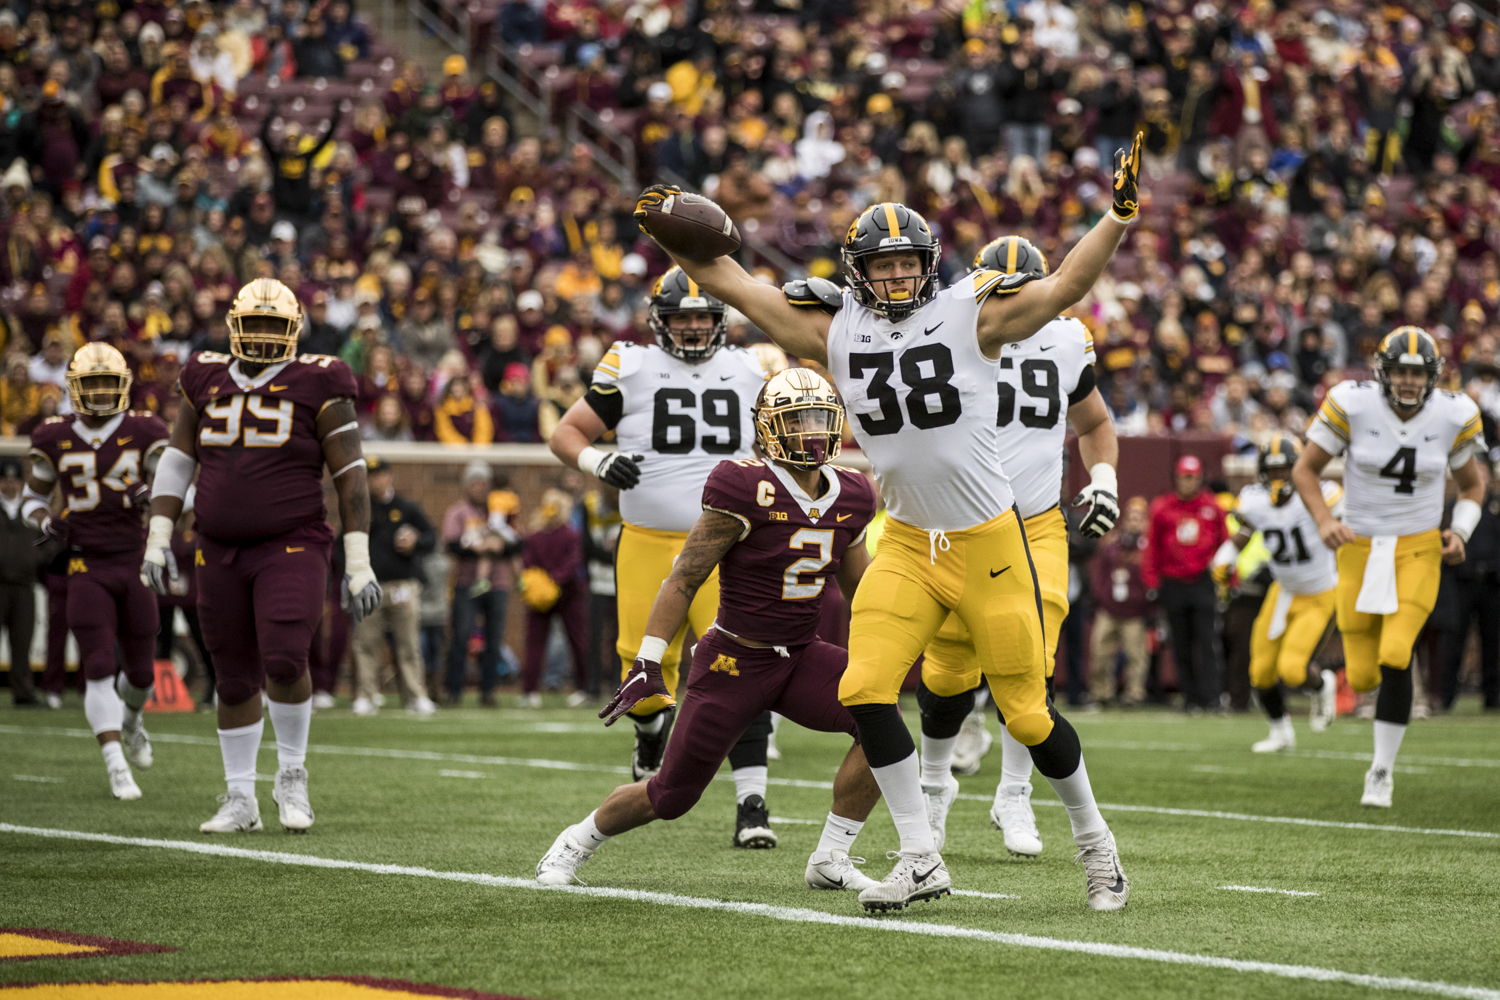 Iowa+tight+end+T.J.+Hockenson+celebrates+after+catching+a+touchdown+pass+during+Iowa%27s+game+against+Minnesota+at+TCF+Bank+Stadium+on+Saturday%2C+October+6%2C+2018.